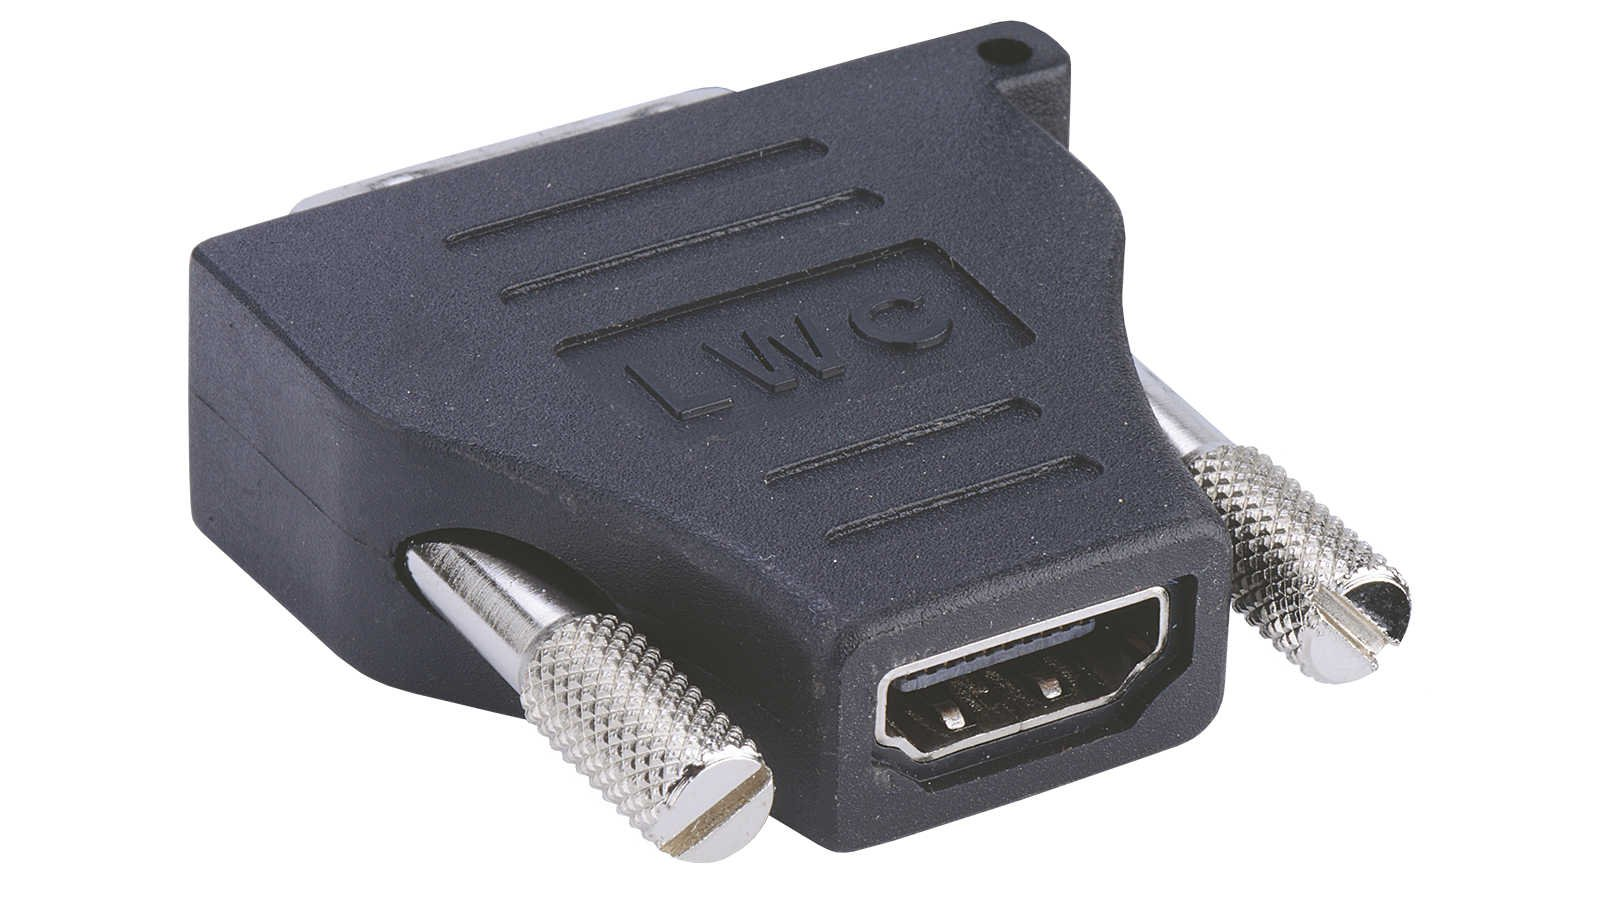 Adapter for DVI Digital male to HDMI Female